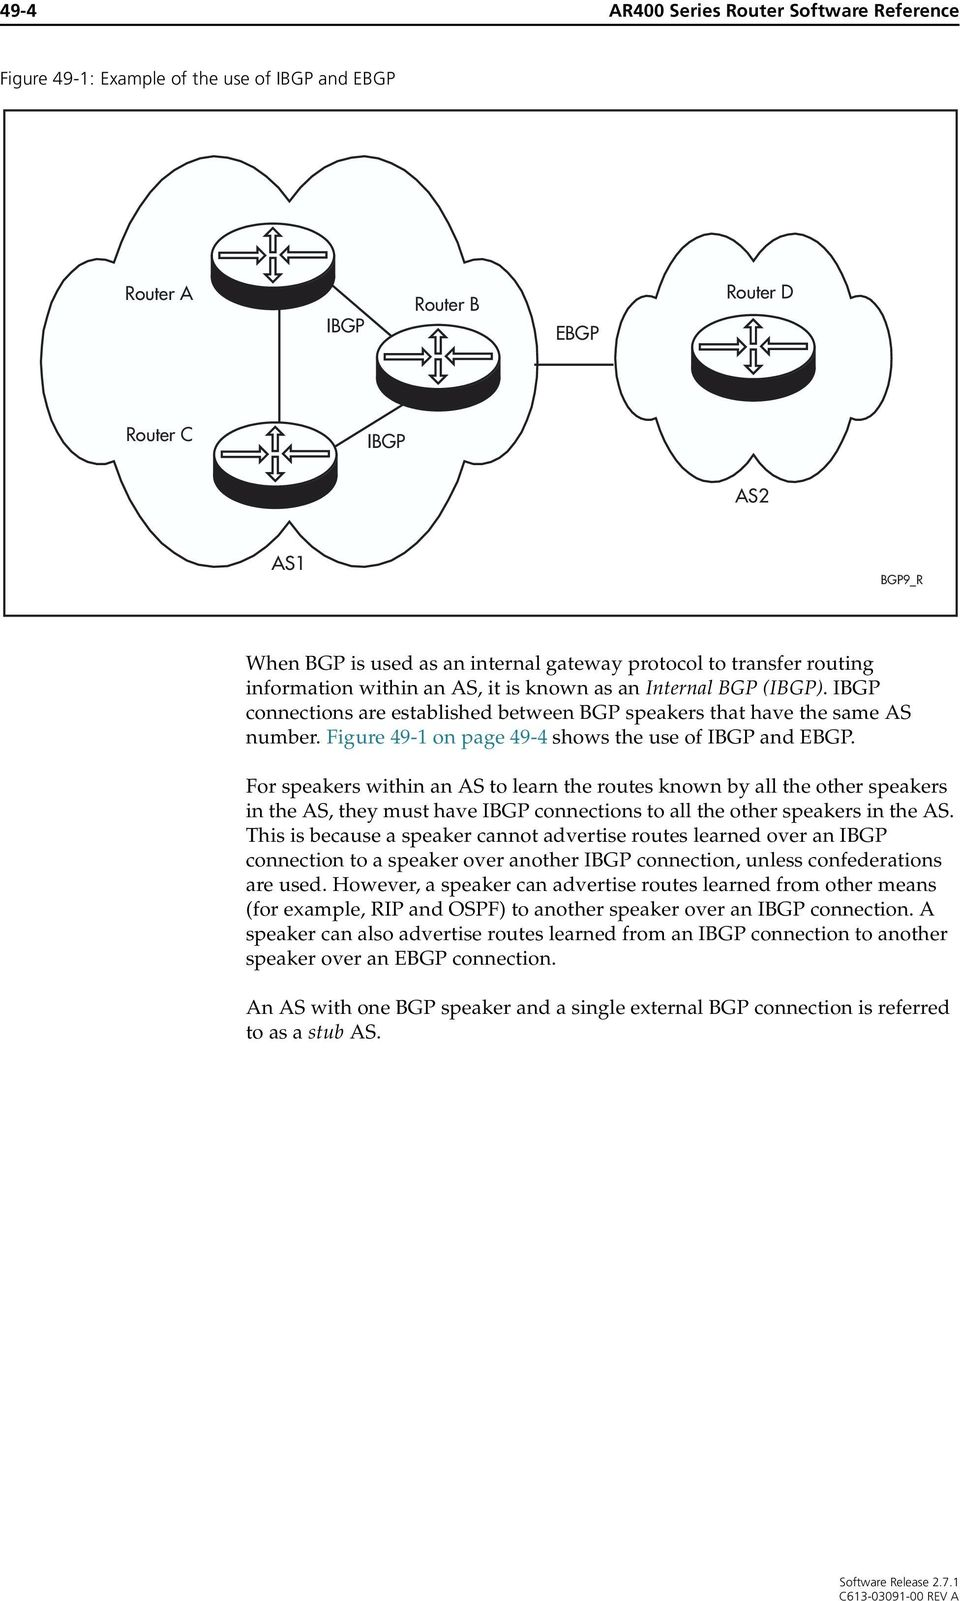 Figure 49-1 on page 49-4 shows the use of IBGP and EBGP.